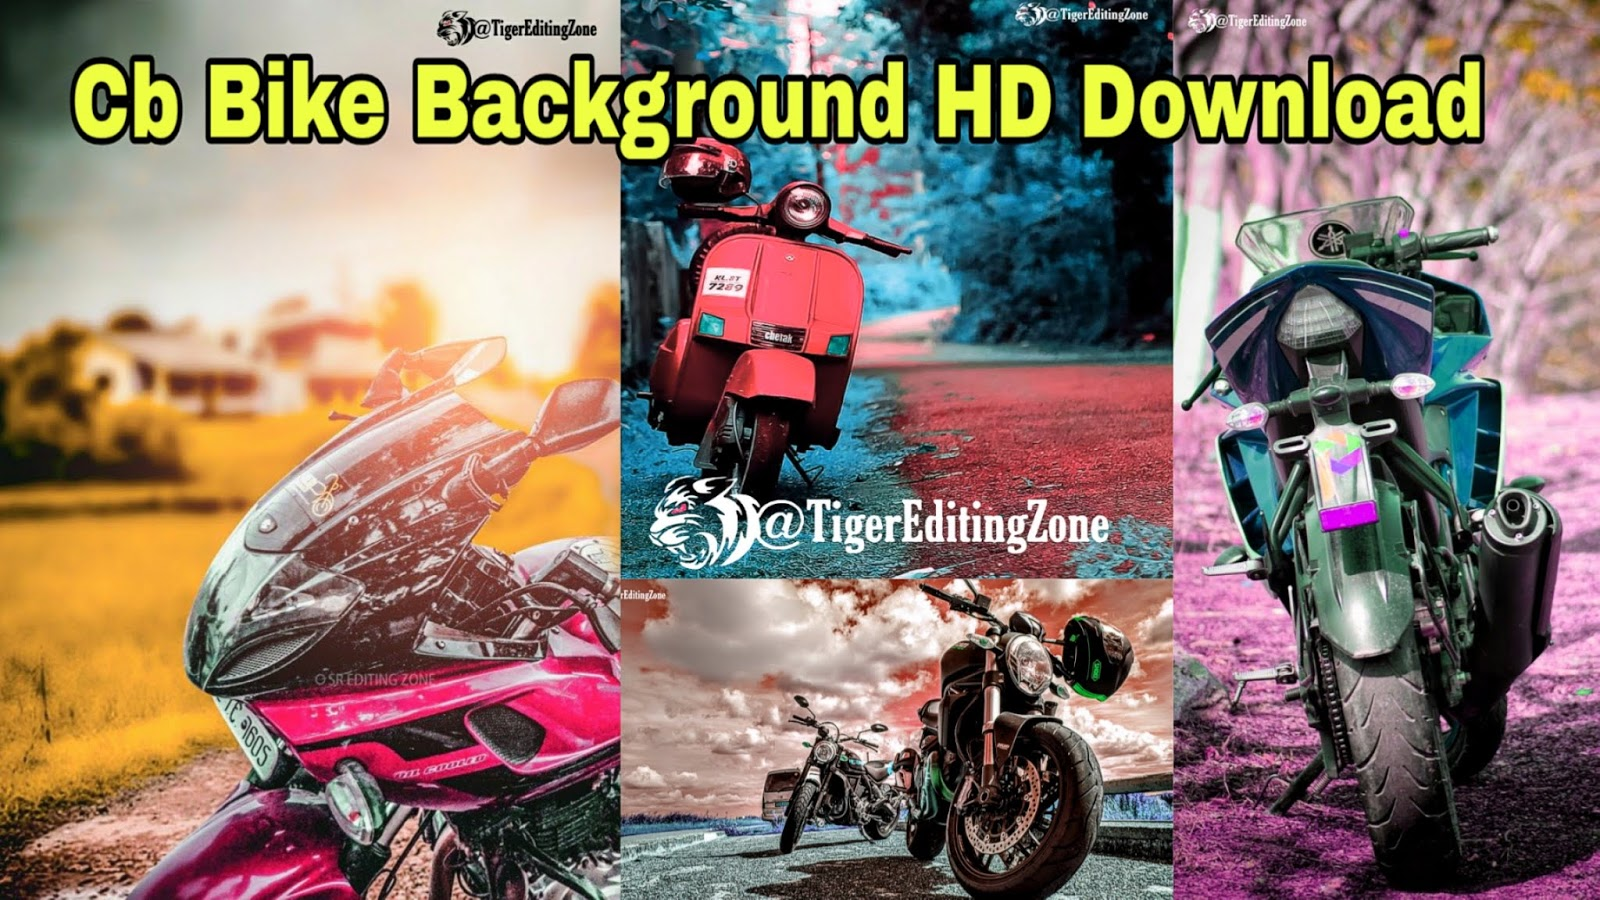 50+ Bike Background HD | CB Bike Backgrounds Images For PicsArt & Photoshop